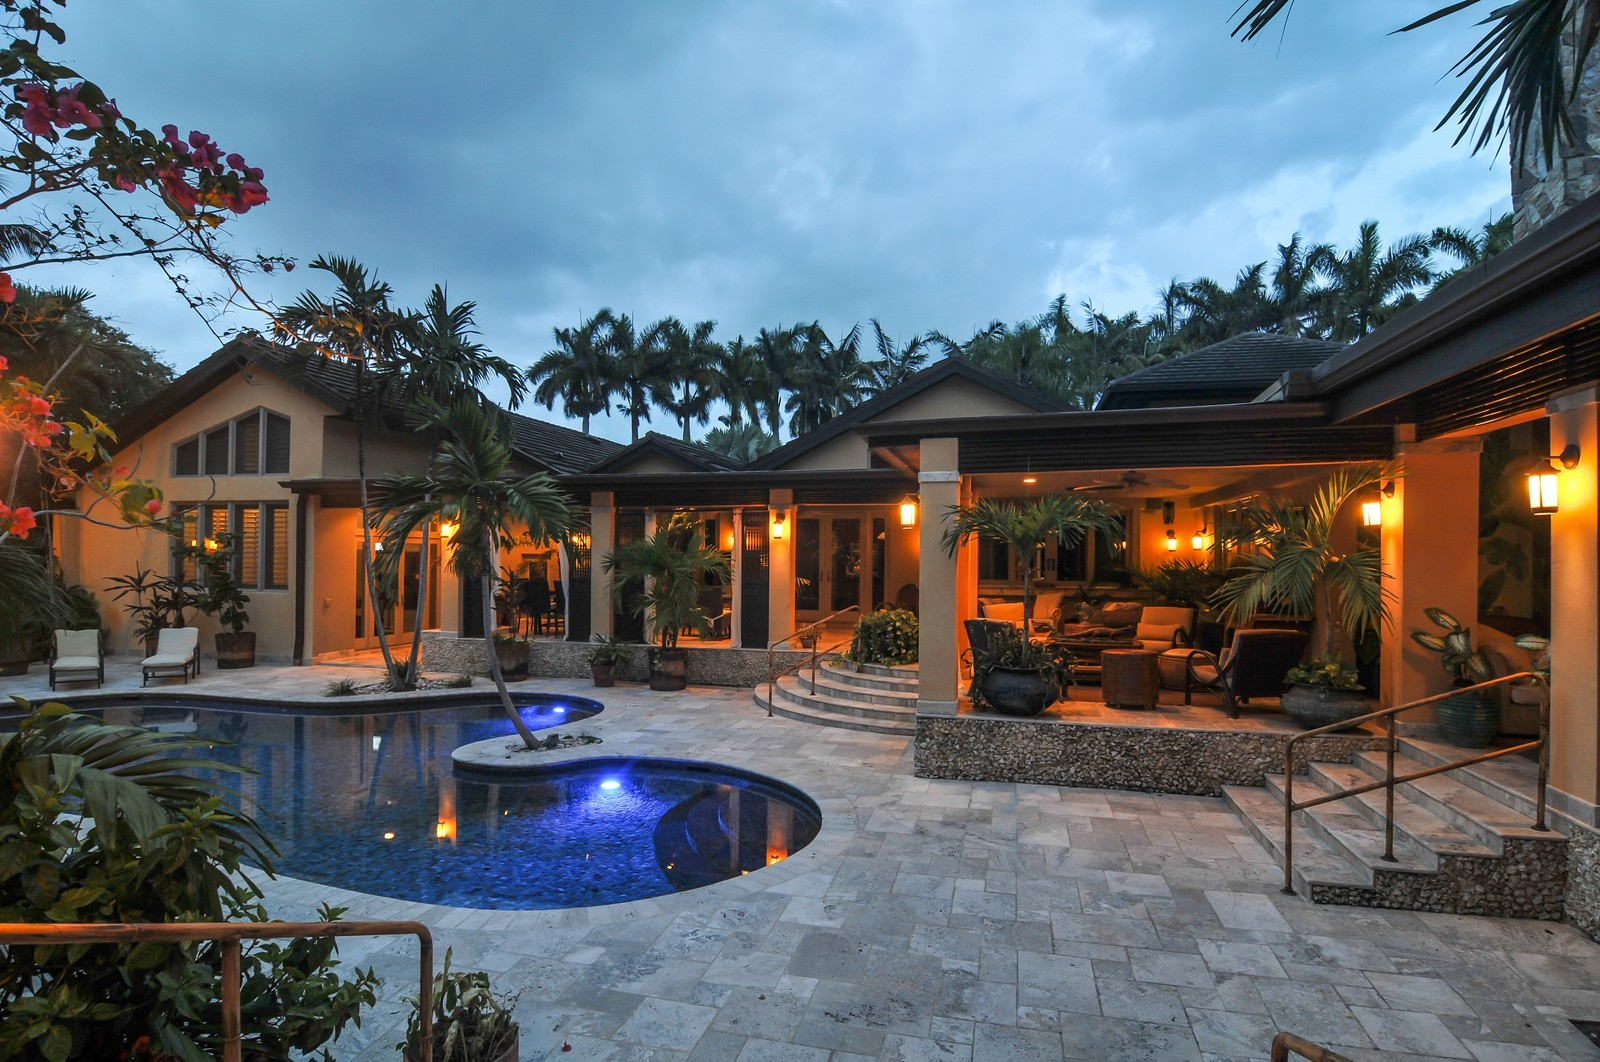 Real Estate Photography - 14200 Farmer Rd, Palmetto Bay, FL, 33158 - Property designed by renowned Fernando Sanchez